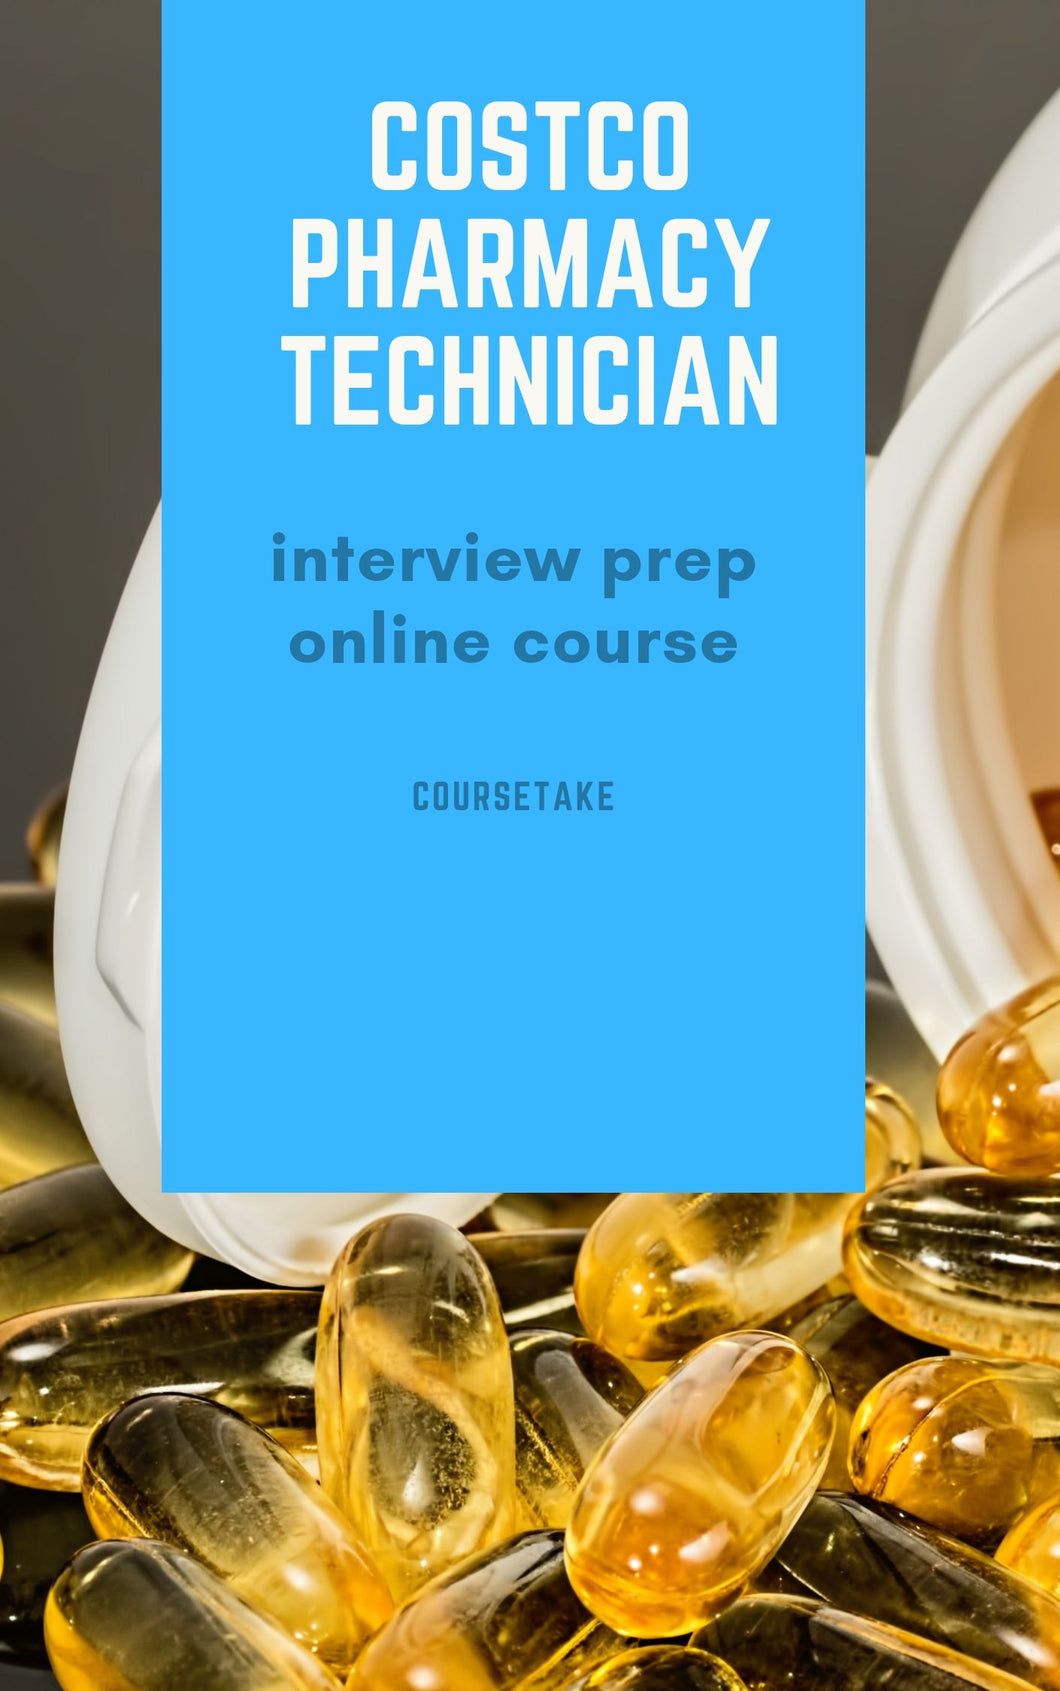 Costco Pharmacy Technician Interview Preparation Online Course